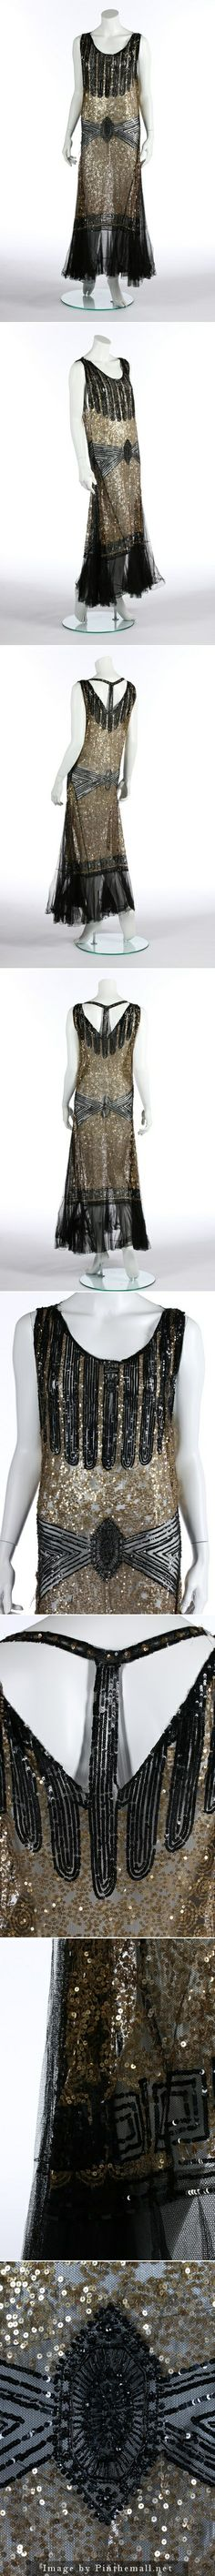 A black and gold sequined tulle evening gown, circa 1930. with bugle beaded 'girdle' and central medallions, gold curleque ground, vertical centre-strap to back, flounced hem. KTA